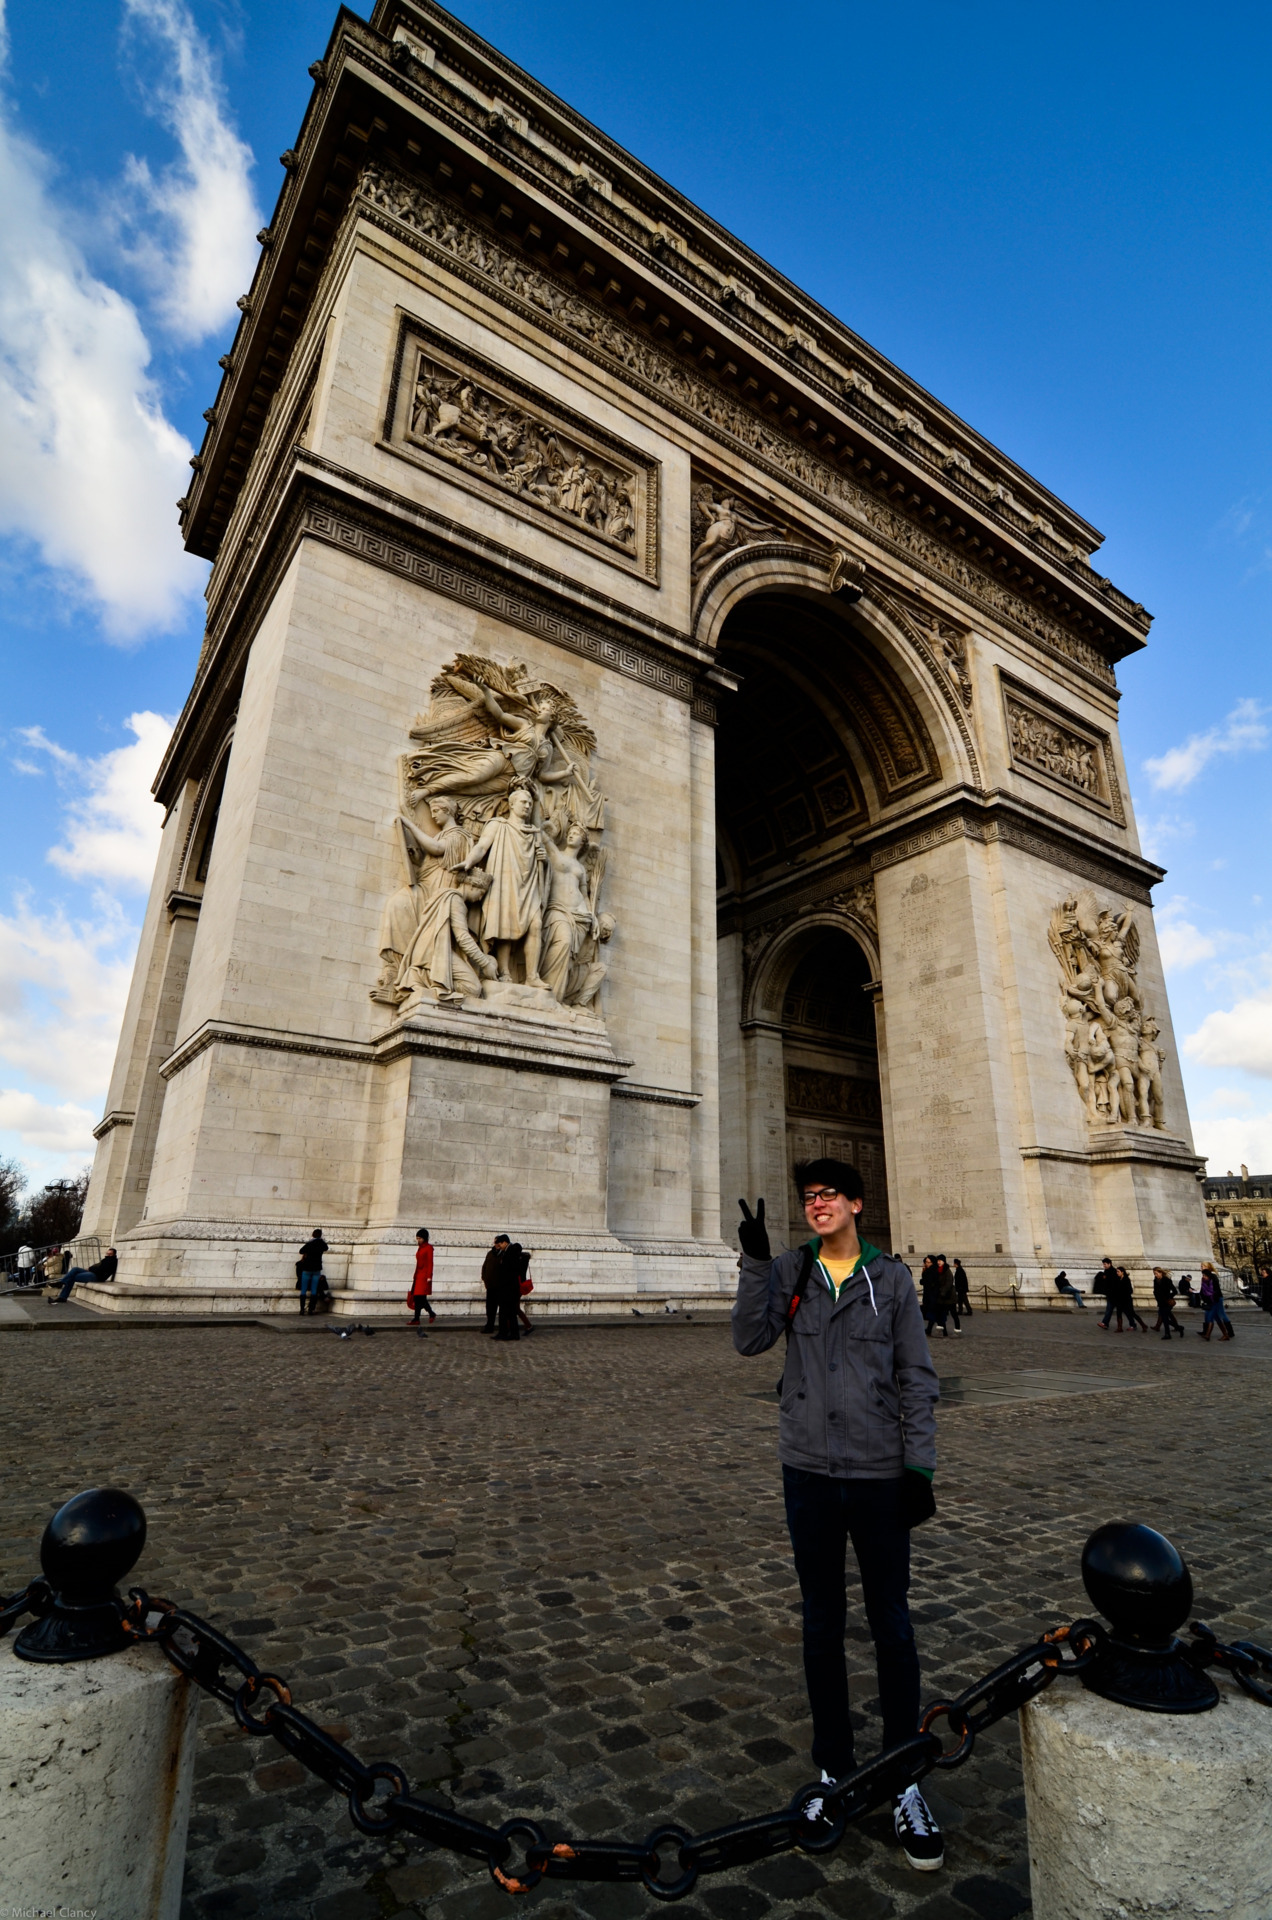 Kiel in front of le Arc de Triomphe Paris, February 2012 Someone refused the whole trip to give me a classic Japanese peace symbol in photos, yet I managed to convince him to flash them in front of the Arc de Triomphe, on the condition it didn't appear on the internet…